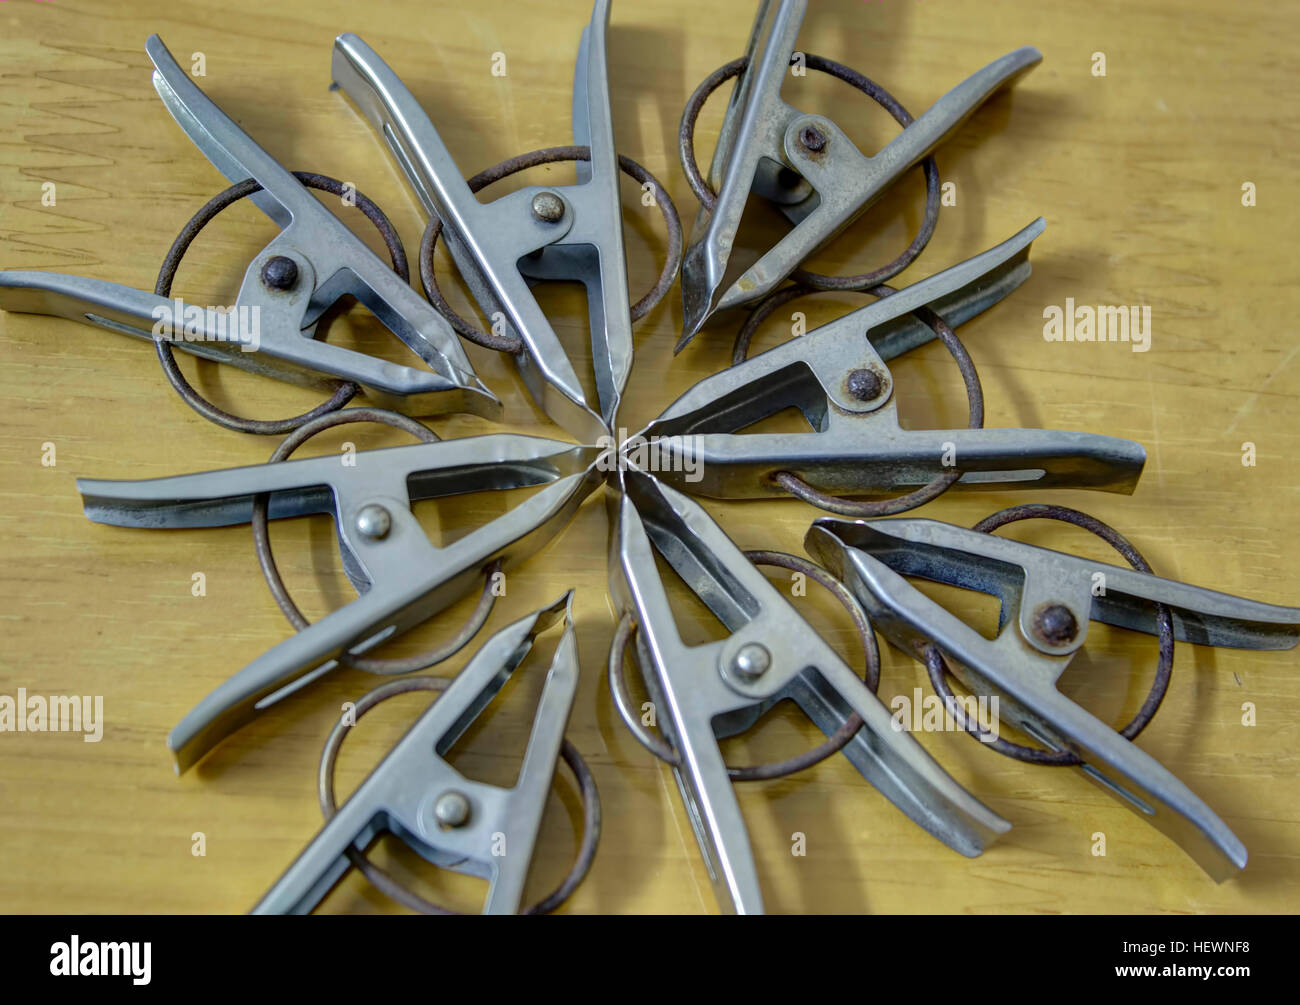 Hanging dryer clips. Suitable for both indoor and outdoor use. - Stock Image